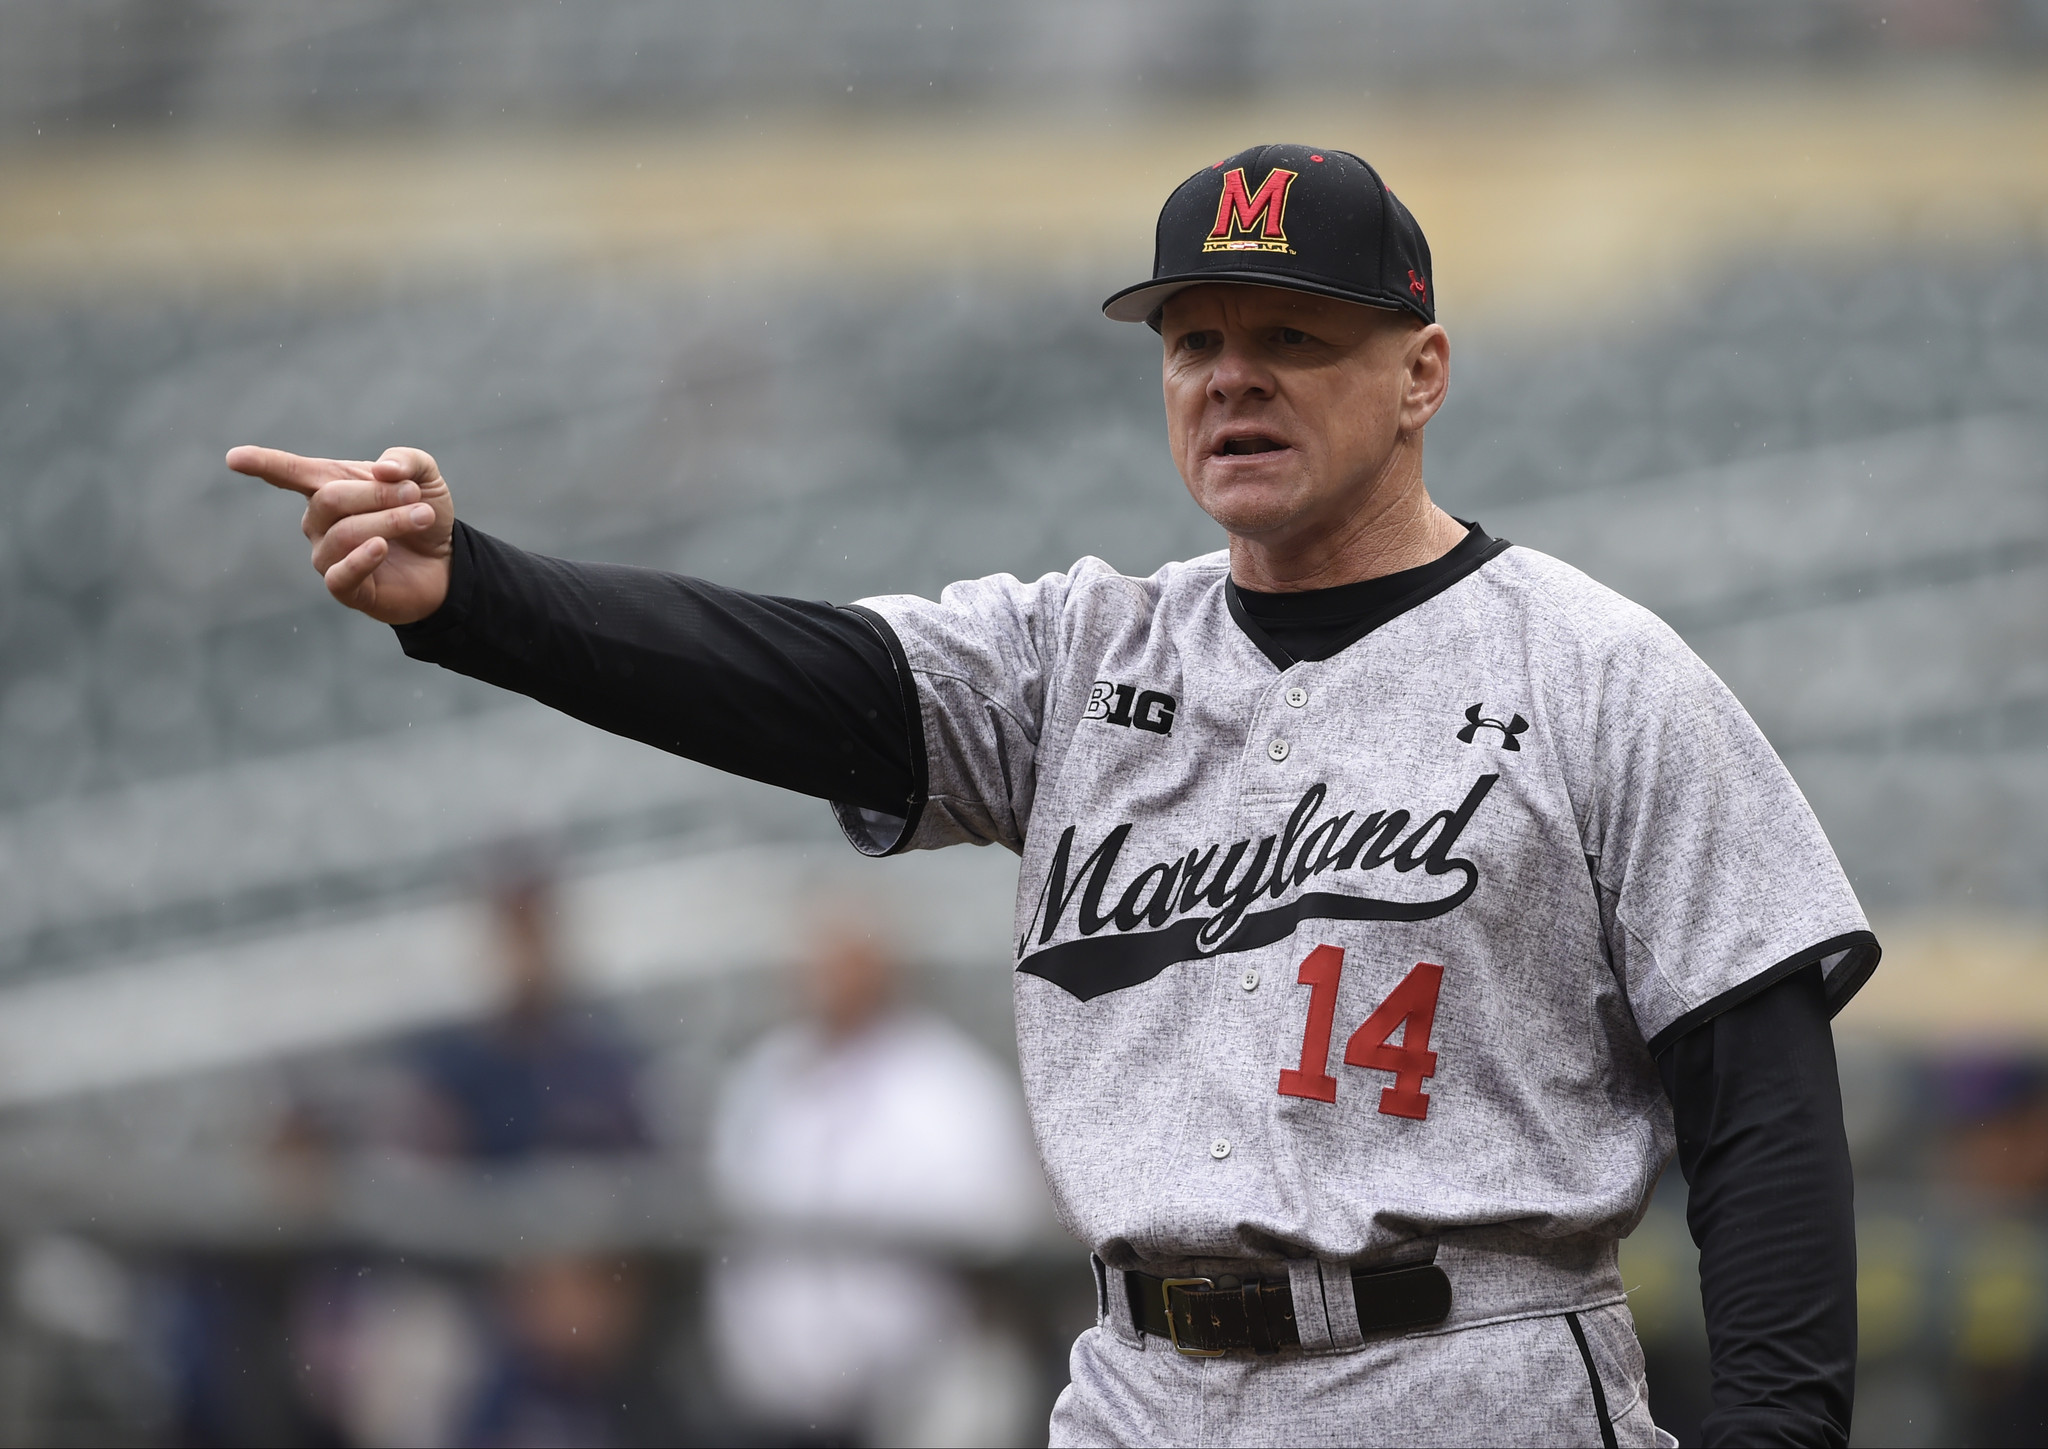 Maryland Baseball Coach John Szefc Signs Year Contract